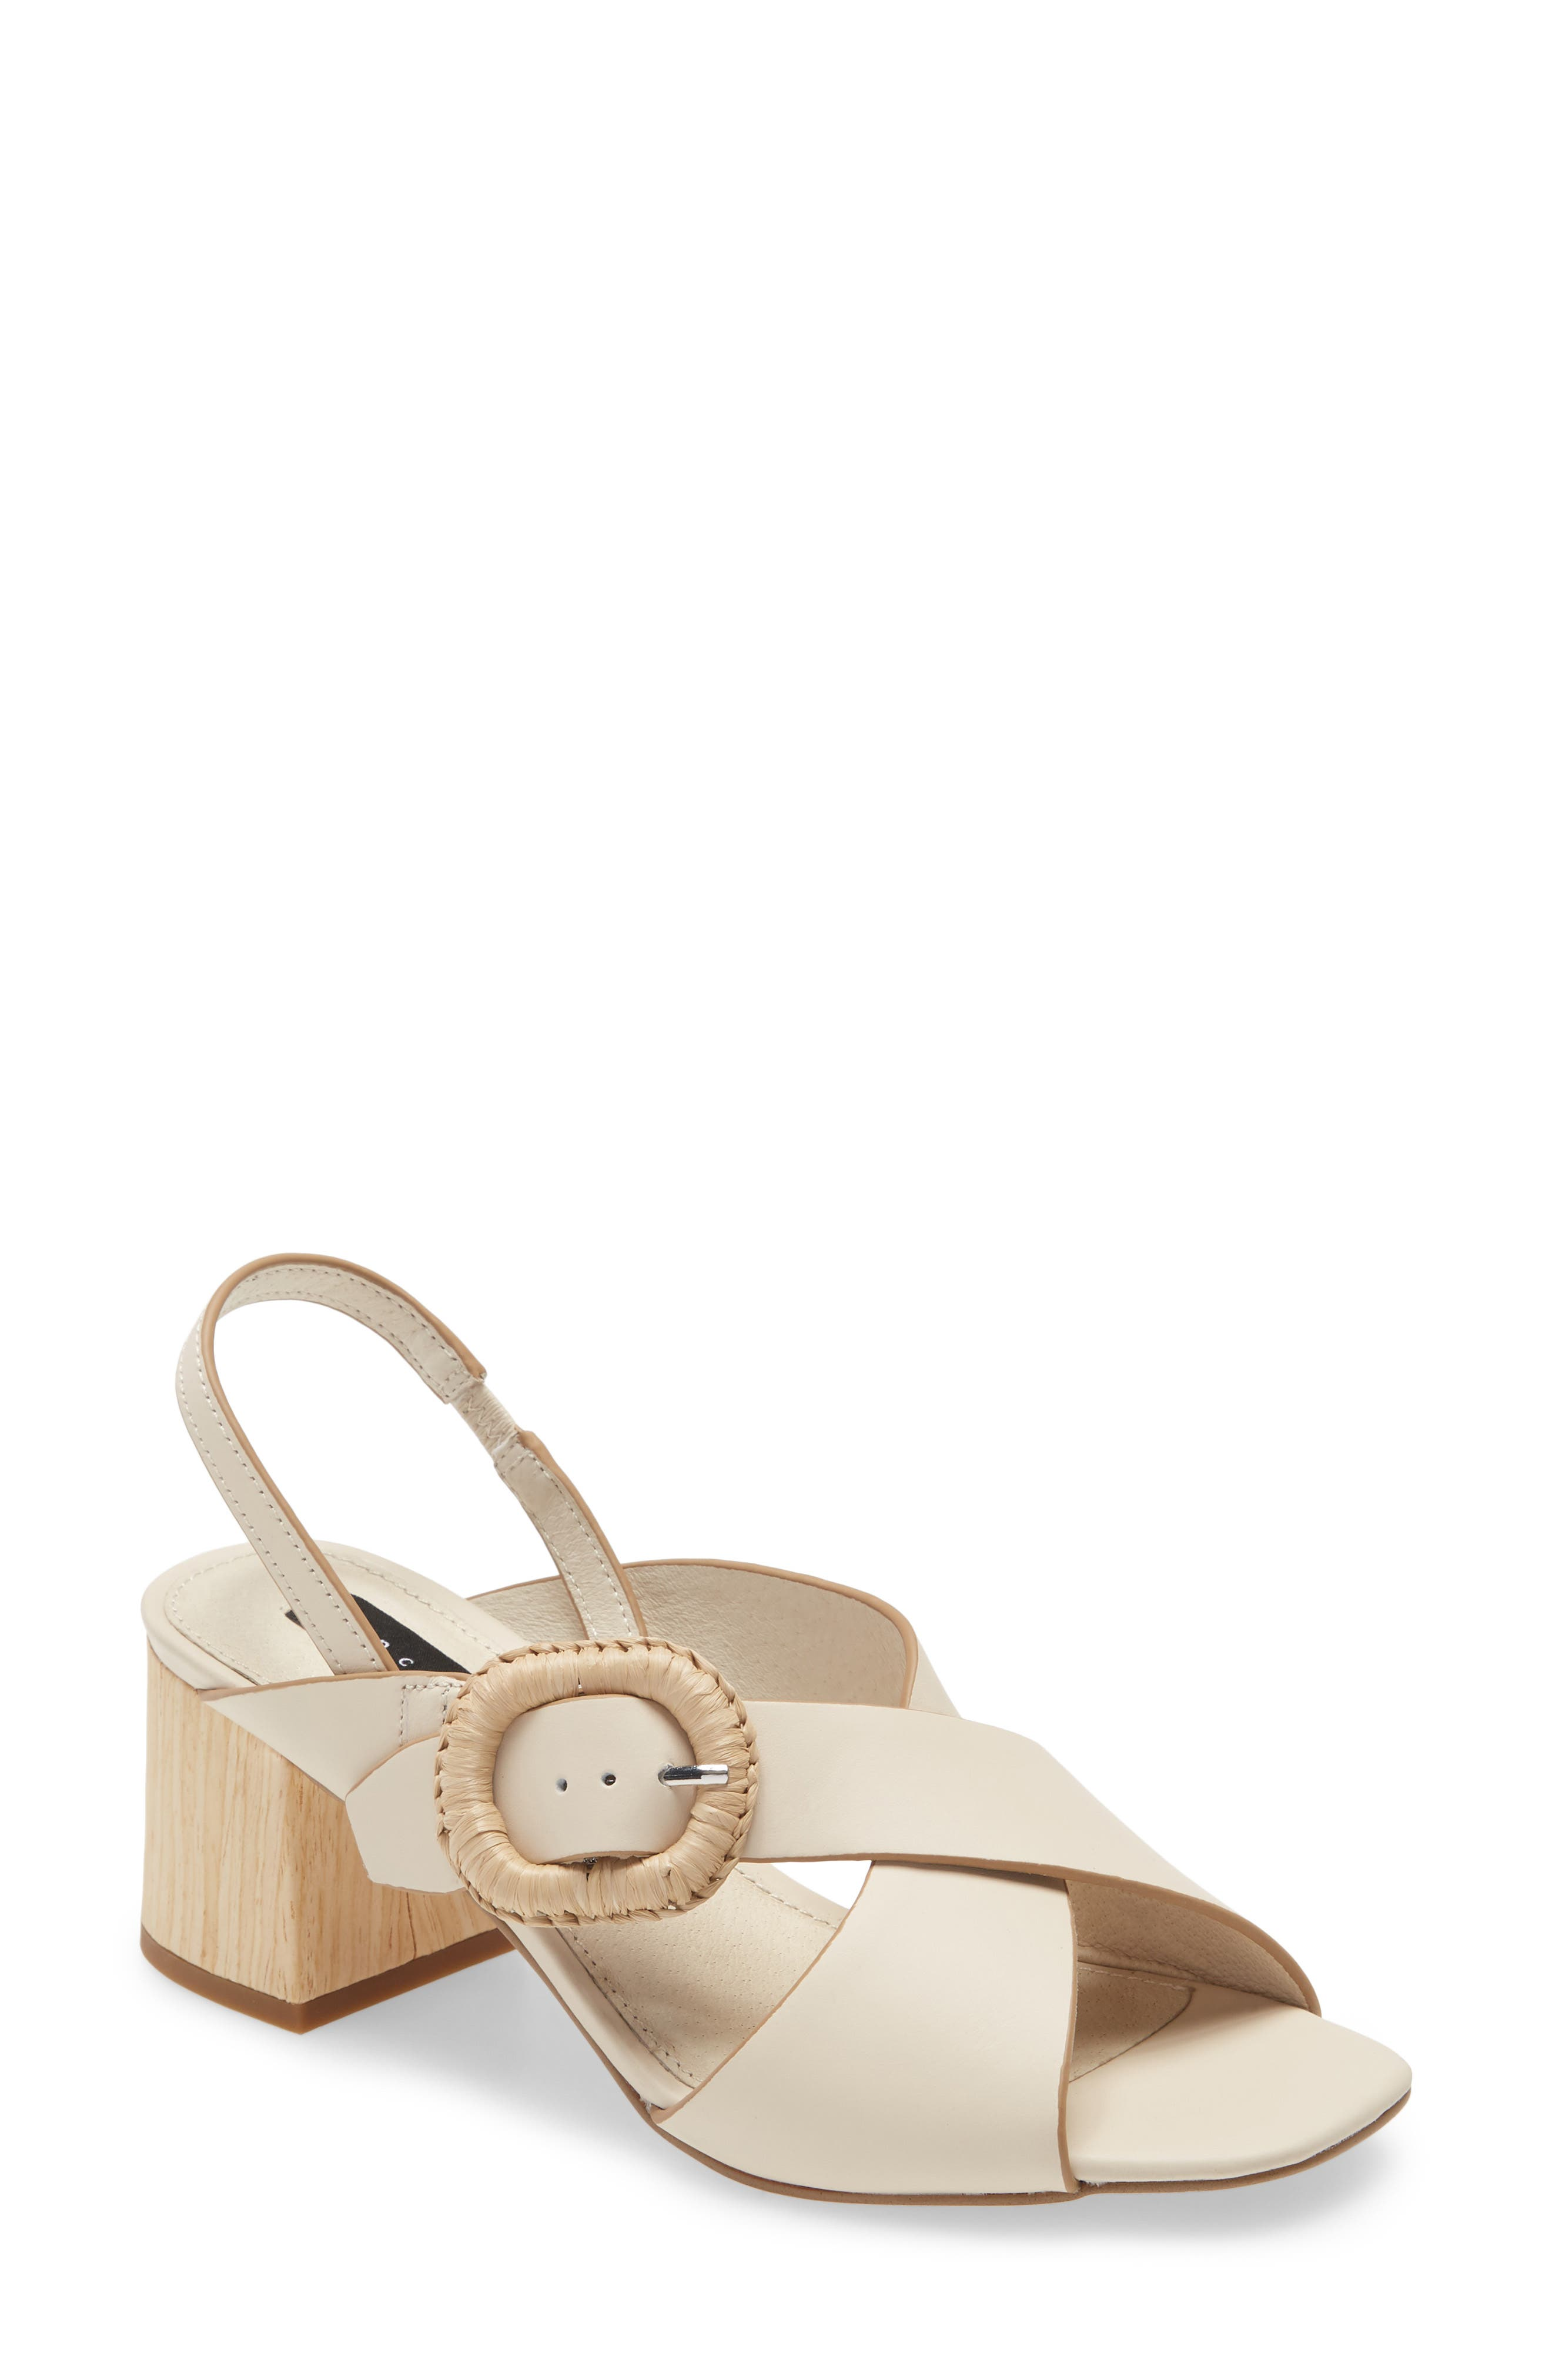 An oversized buckle details a strappy slingback sandal lifted by a woodgrain block heel. Style Name: Sanctuary Bounce Slingback Sandal (Women). Style Number: 6043019. Available in stores.